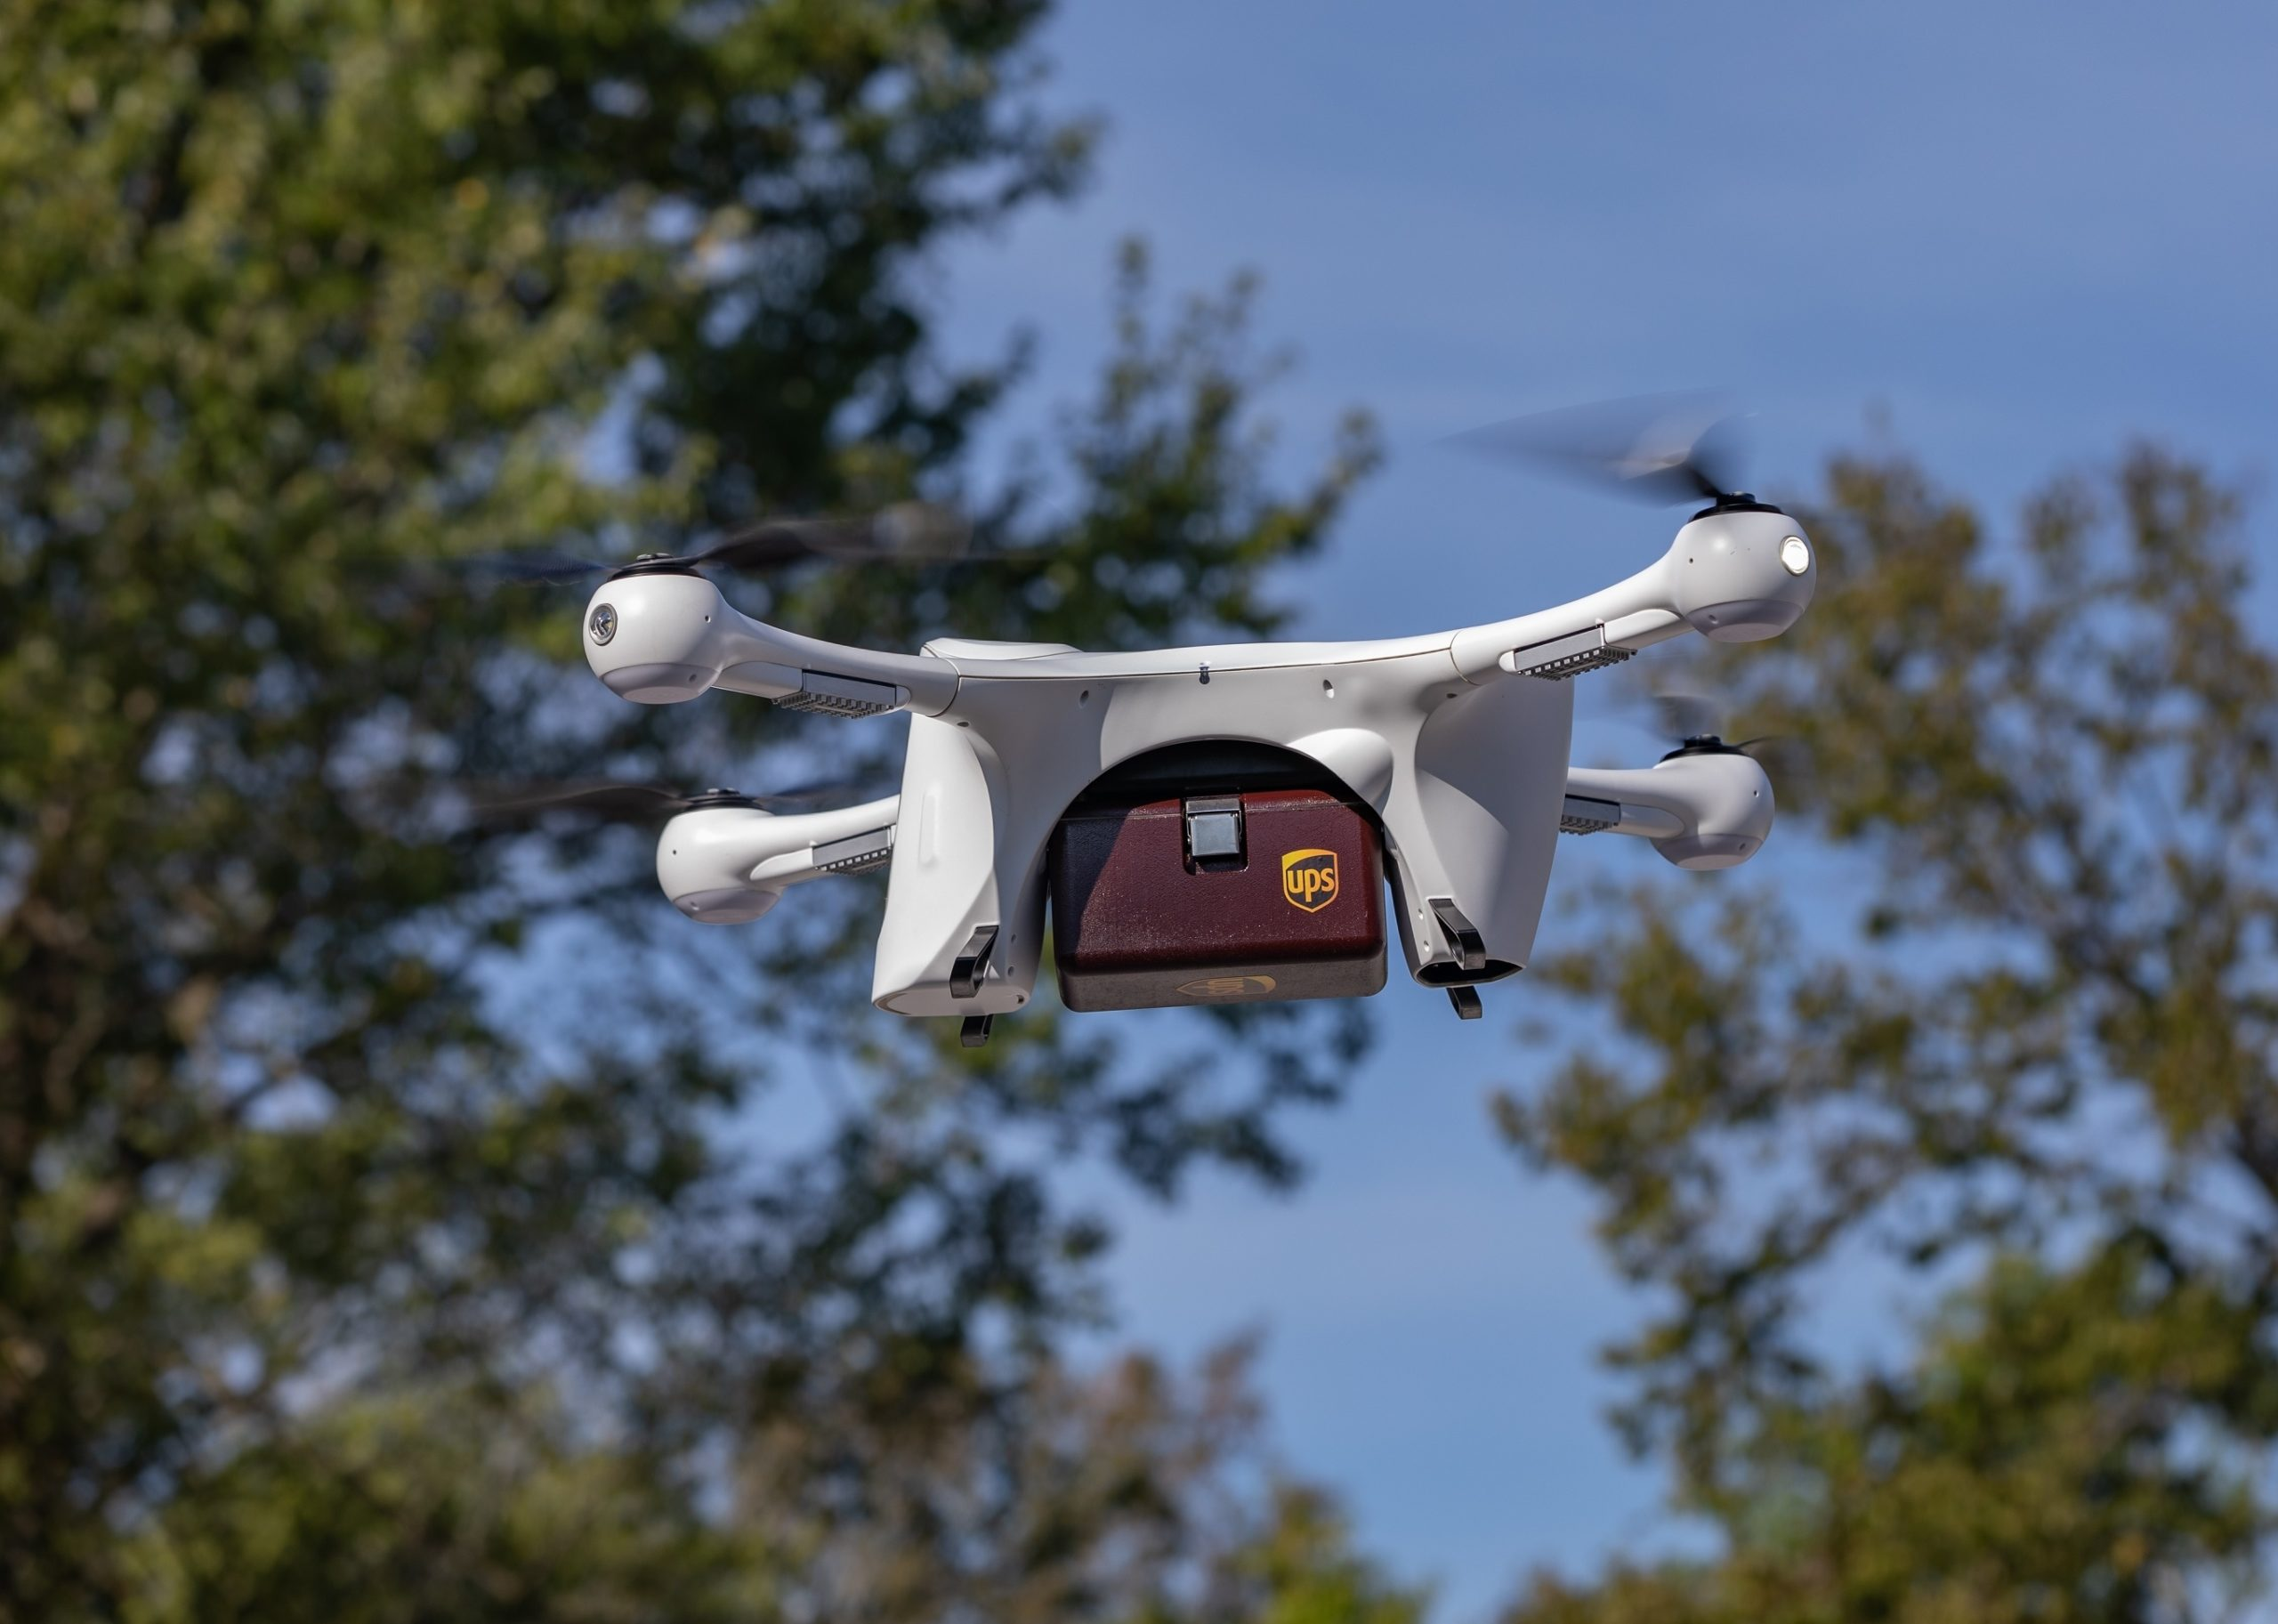 Matternet M2 unmanned aircraft has airworthiness criteria